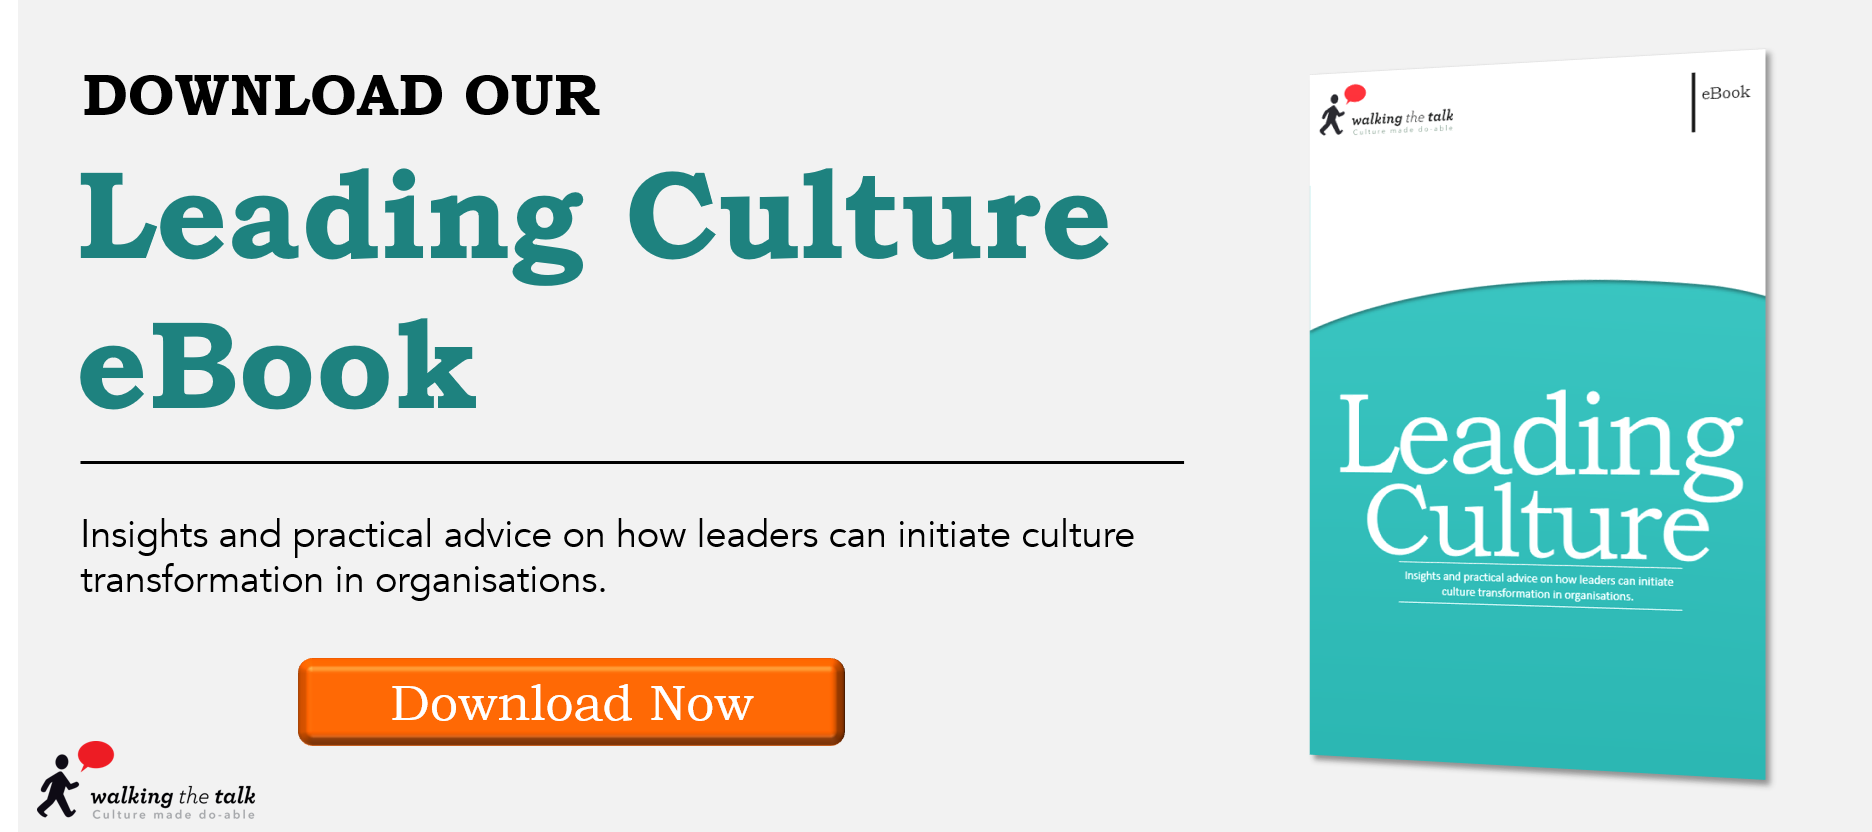 How can you lead your organisation's culture